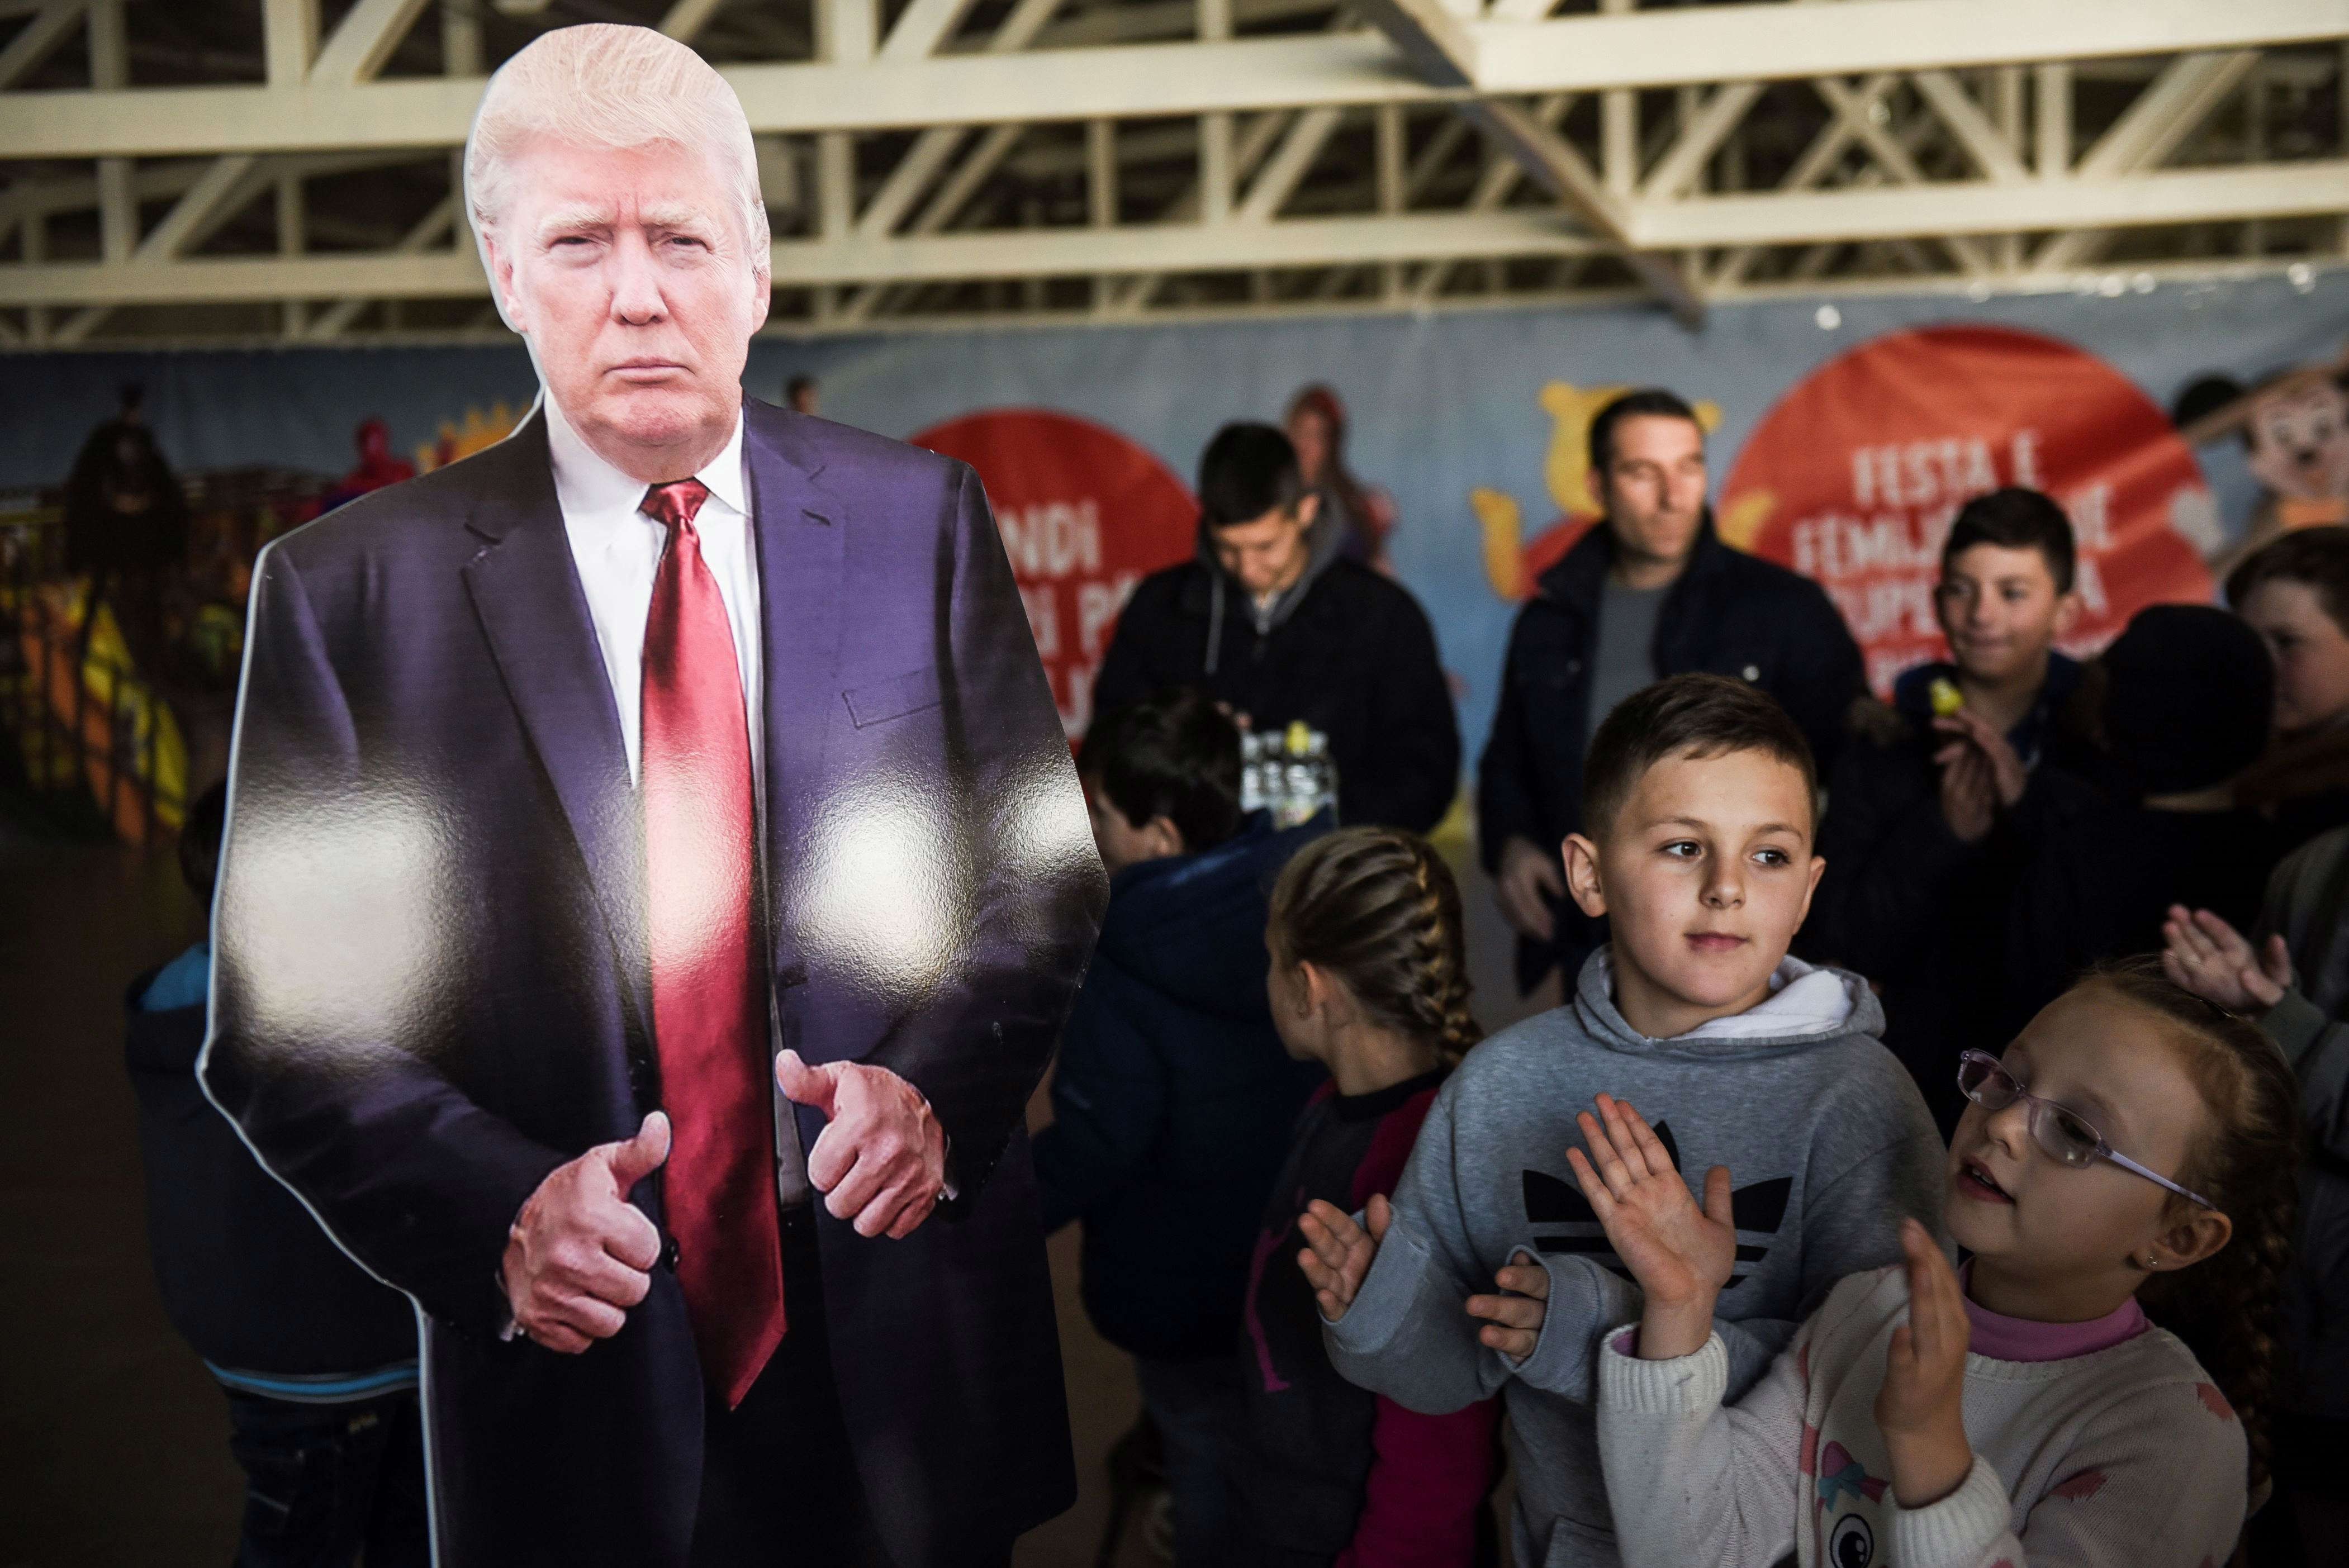 Slide 20 of 35: Children applaud  next to a cardboard depicting U.S President Donald Trump at a restaurant near the town of Ferizaj on January 28, 2017, where  45 pizzas were given for free in honor to the new elected  President of the United States of America. / AFP / Armend NIMANI        (Photo credit should read ARMEND NIMANI/AFP/Getty Images)